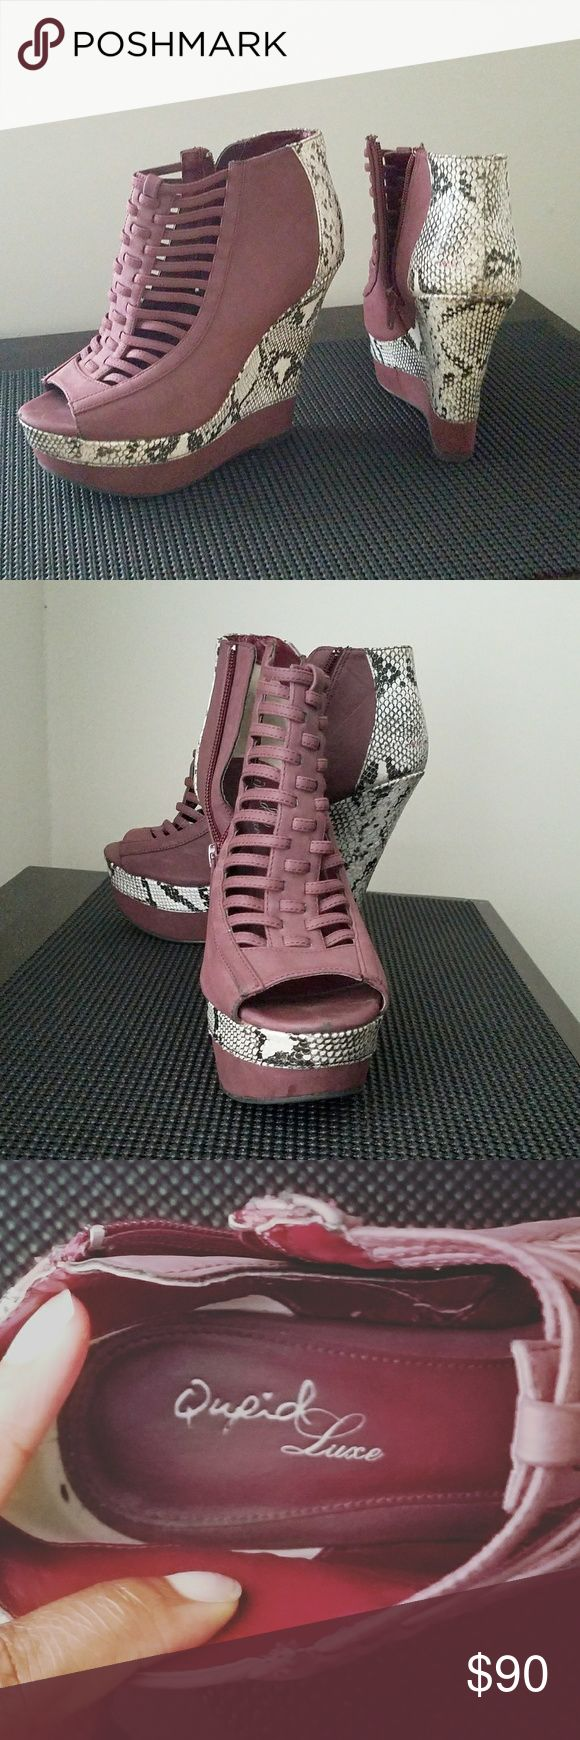 Qupid Luxe peep top gladiator platform booties. This are fierce 5 in heel with a 2 in open toe platform hits right at the ankle.   Mauve color made made leather with a faux black and white snake skin pattern would look cute with a little black dress (LBD).  Like new from the Qupid Luxe collection Qupid Shoes Platforms